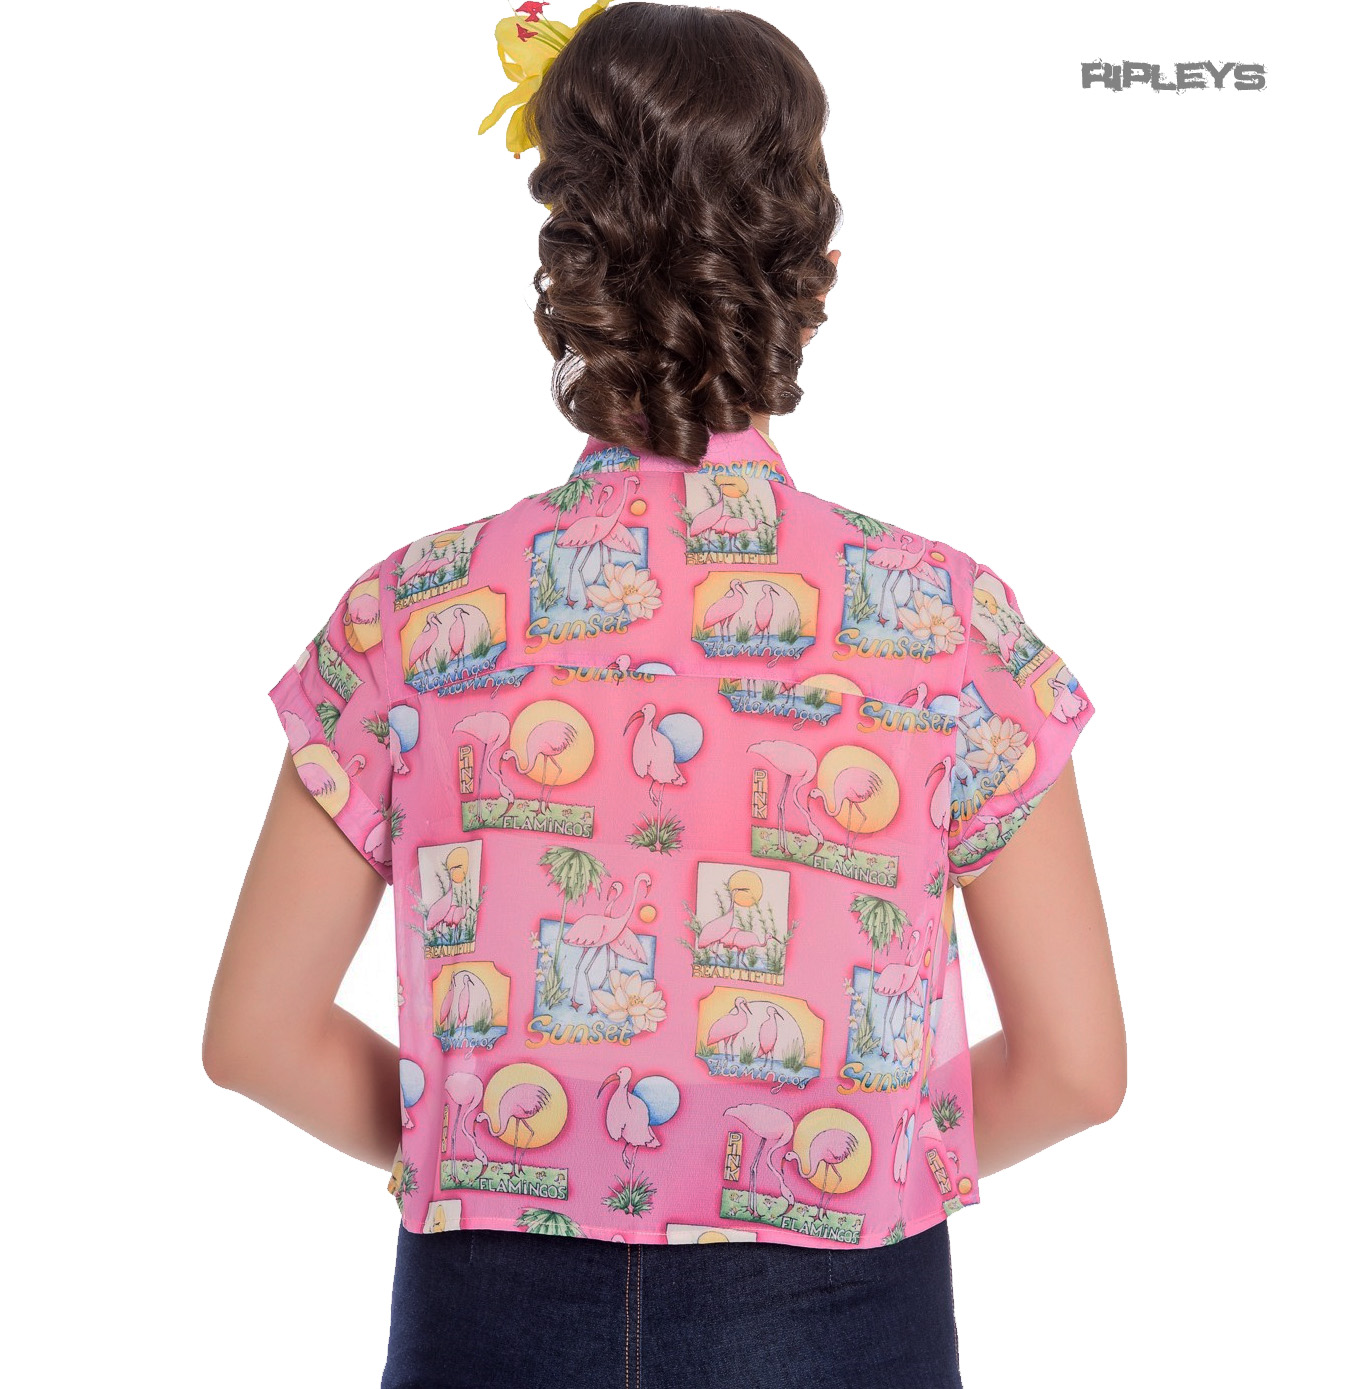 Hell-Bunny-50s-Retro-Top-Pink-Flamingo-MAXINE-Cropped-Blouse-Shirt-All-Sizes thumbnail 16